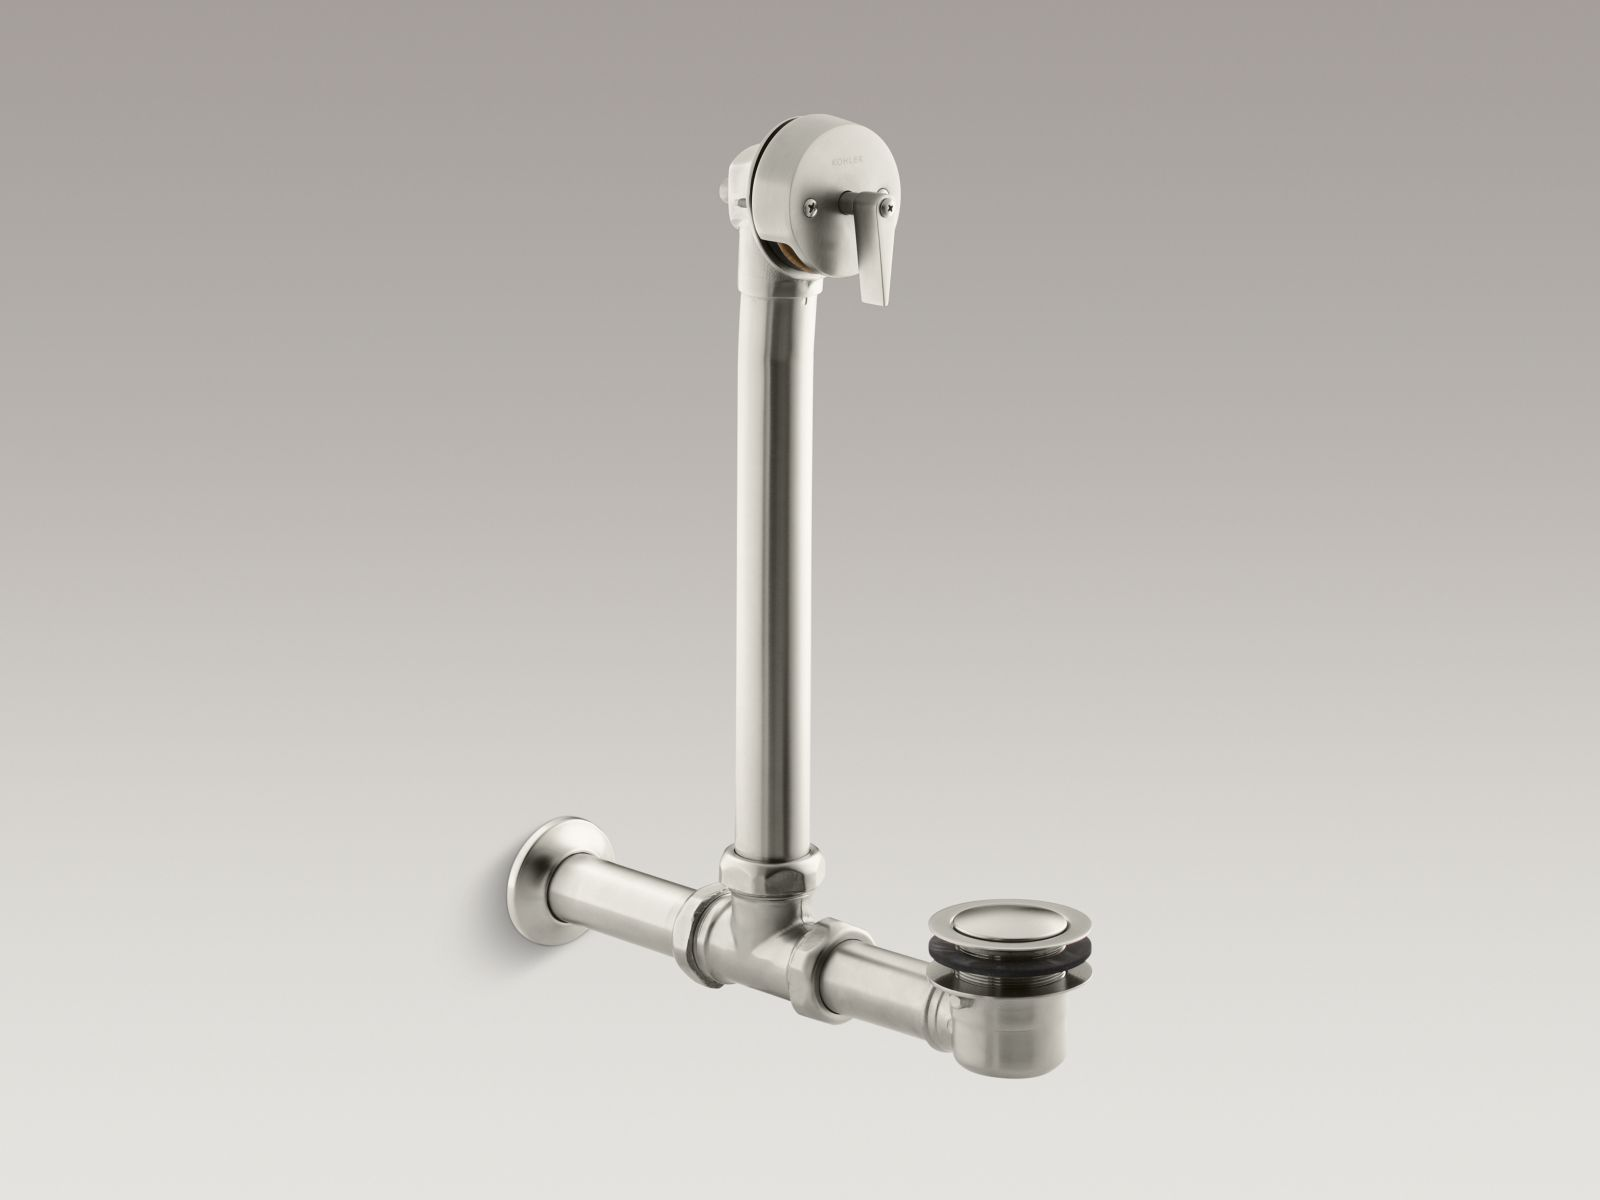 Kohler K-7104-BN Iron Works Exposed Bath Drain for Above-the-Floor Installation Vibrant Brushed Nickel